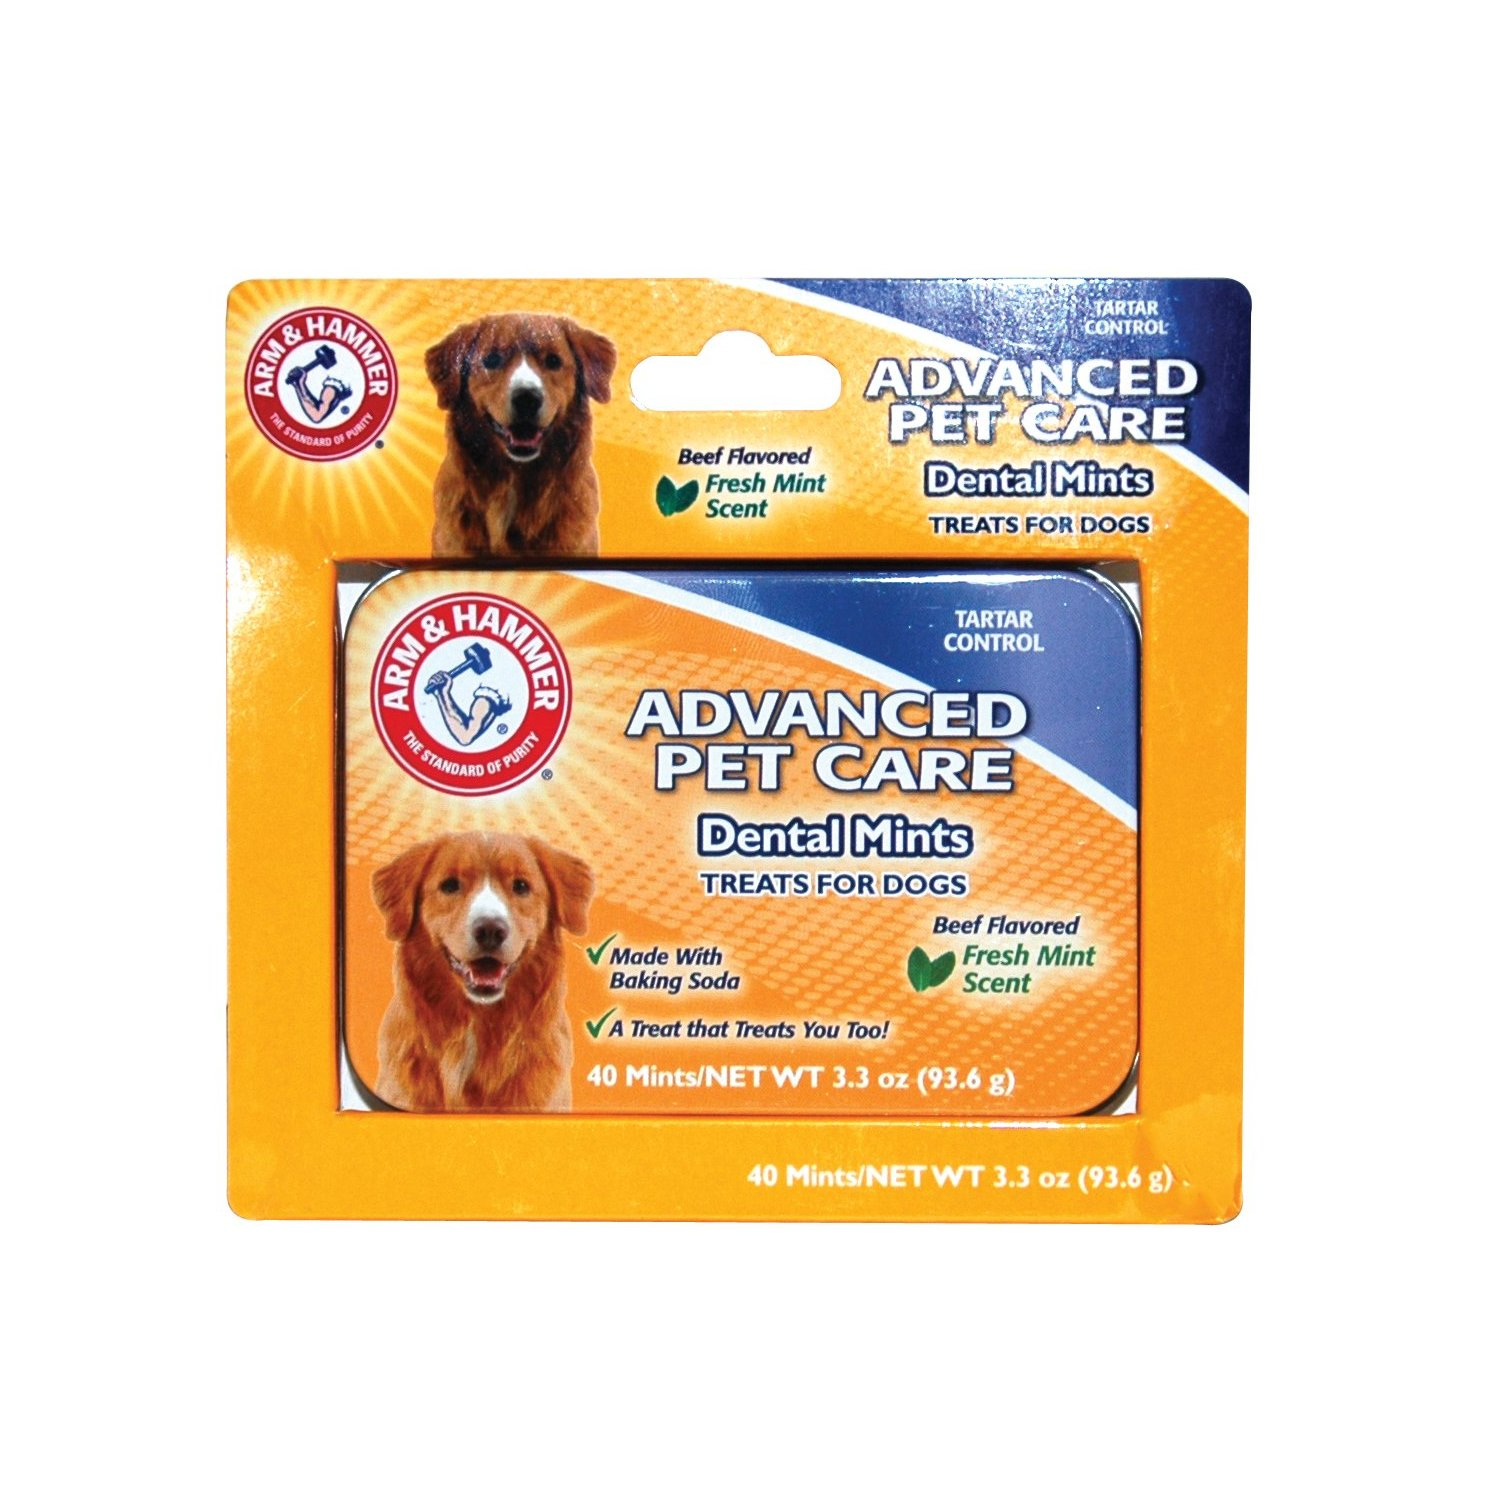 Arm & Hammer Dental Mints for Dogs